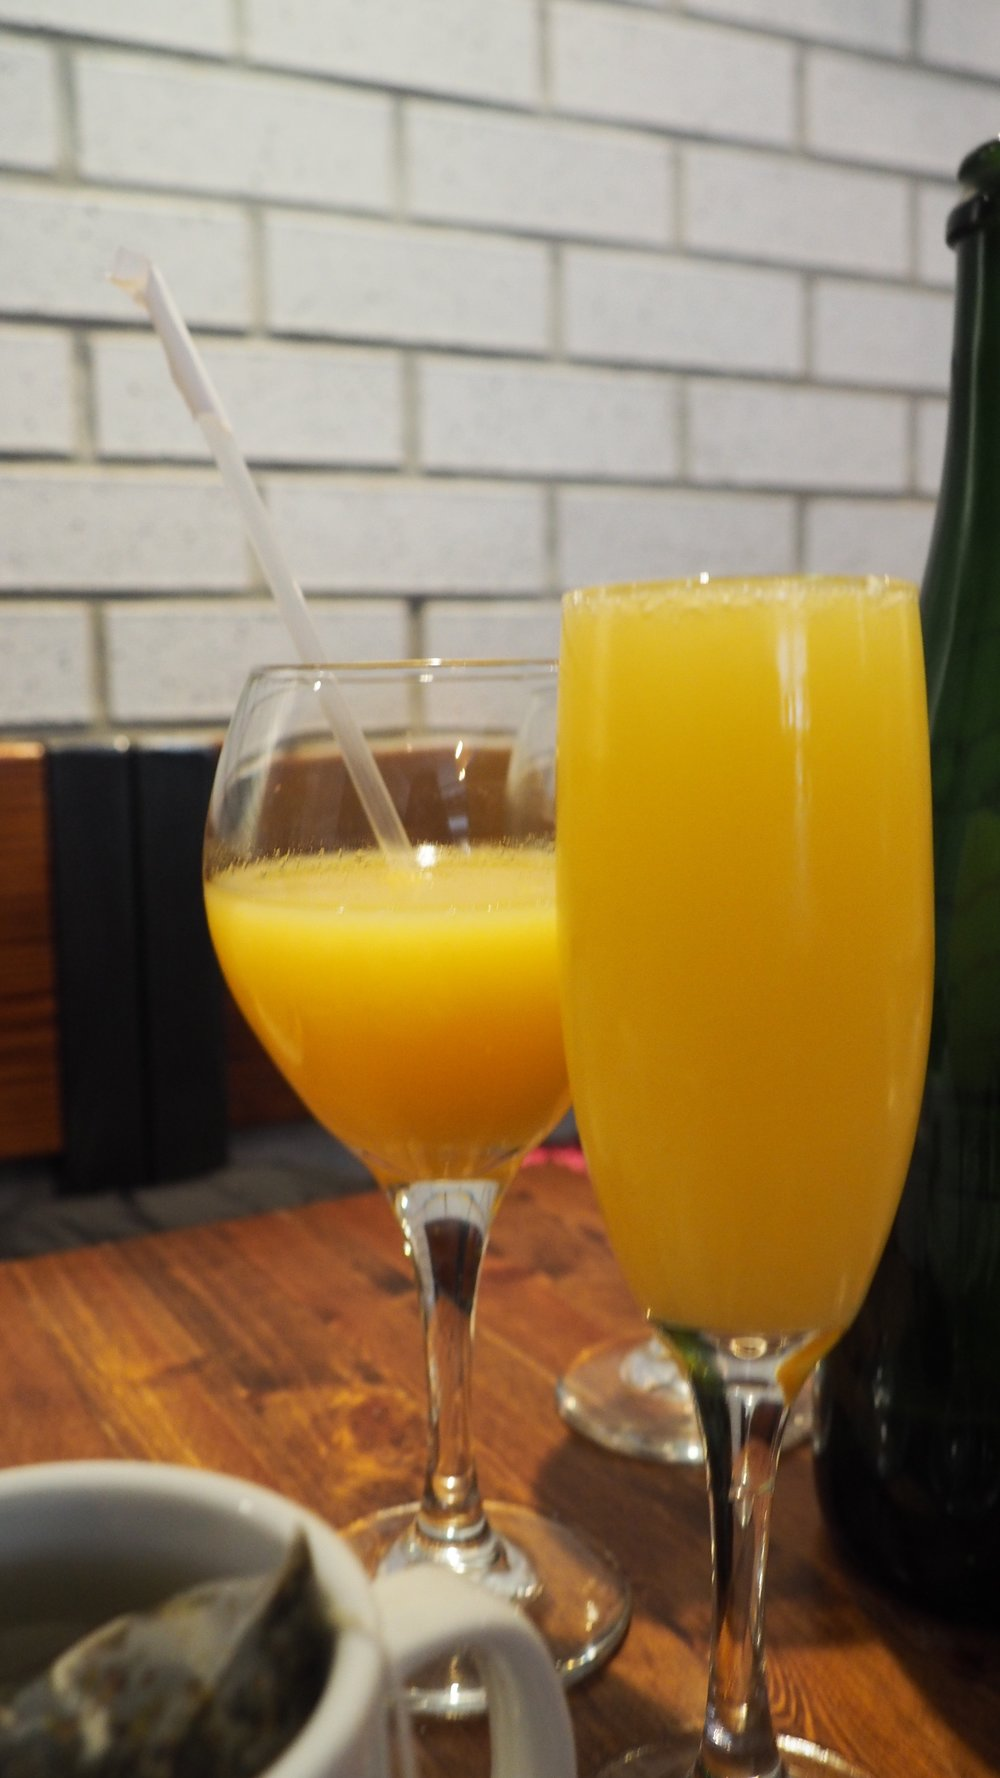 Their brunch menu gives you a free coffee/tea AND a choice of mimosa, orange juice, and other breakfast drinks. Key word: free.